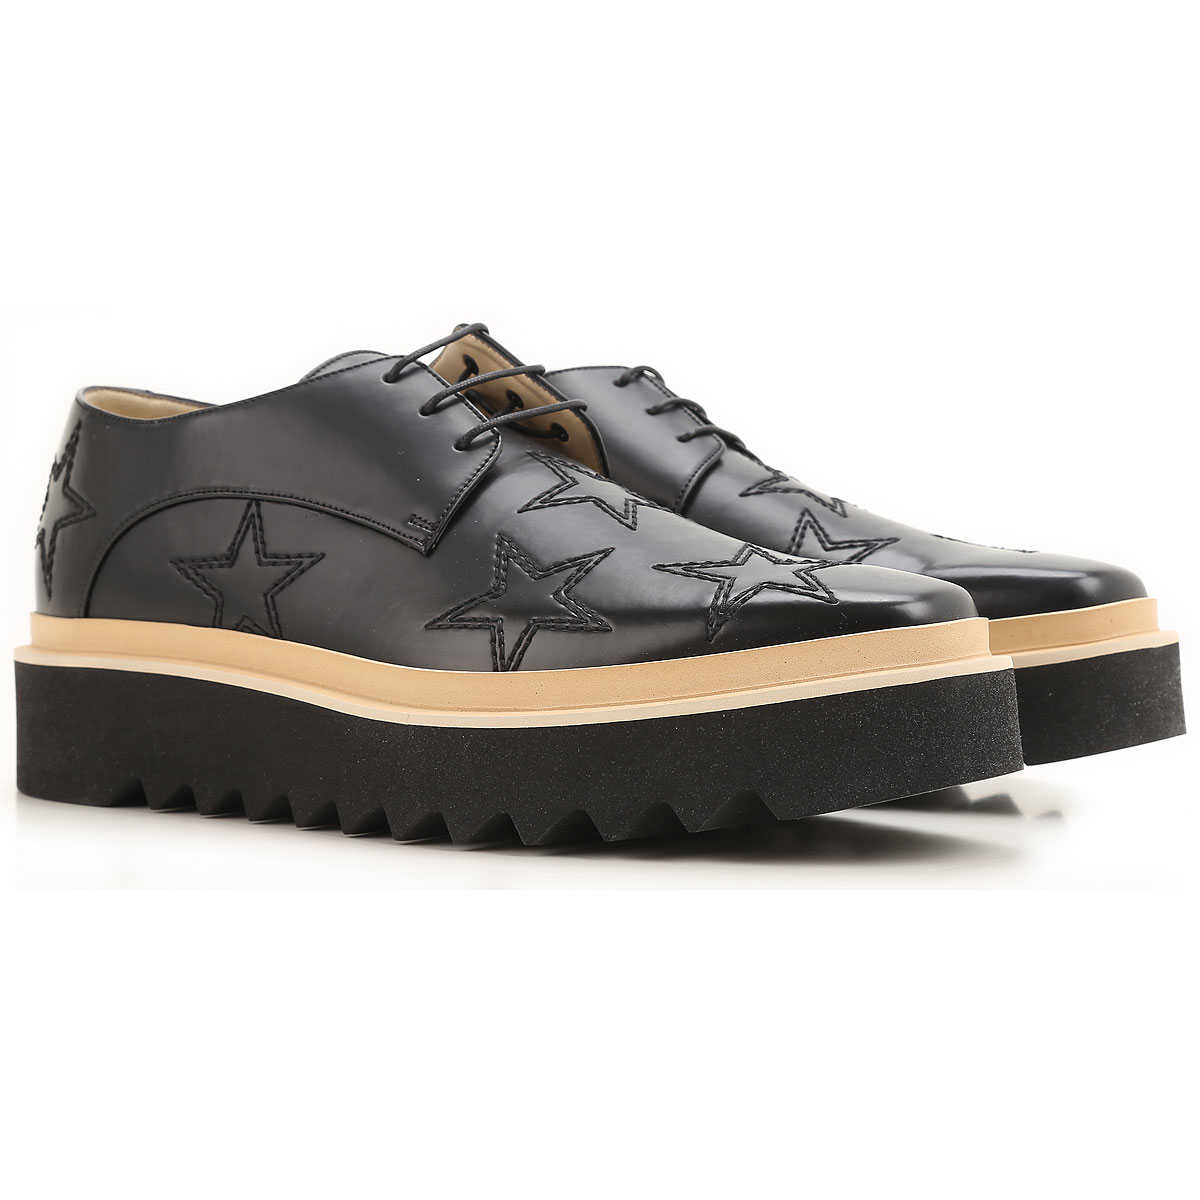 Stella McCartney Lace Up Shoes for Men Oxfords